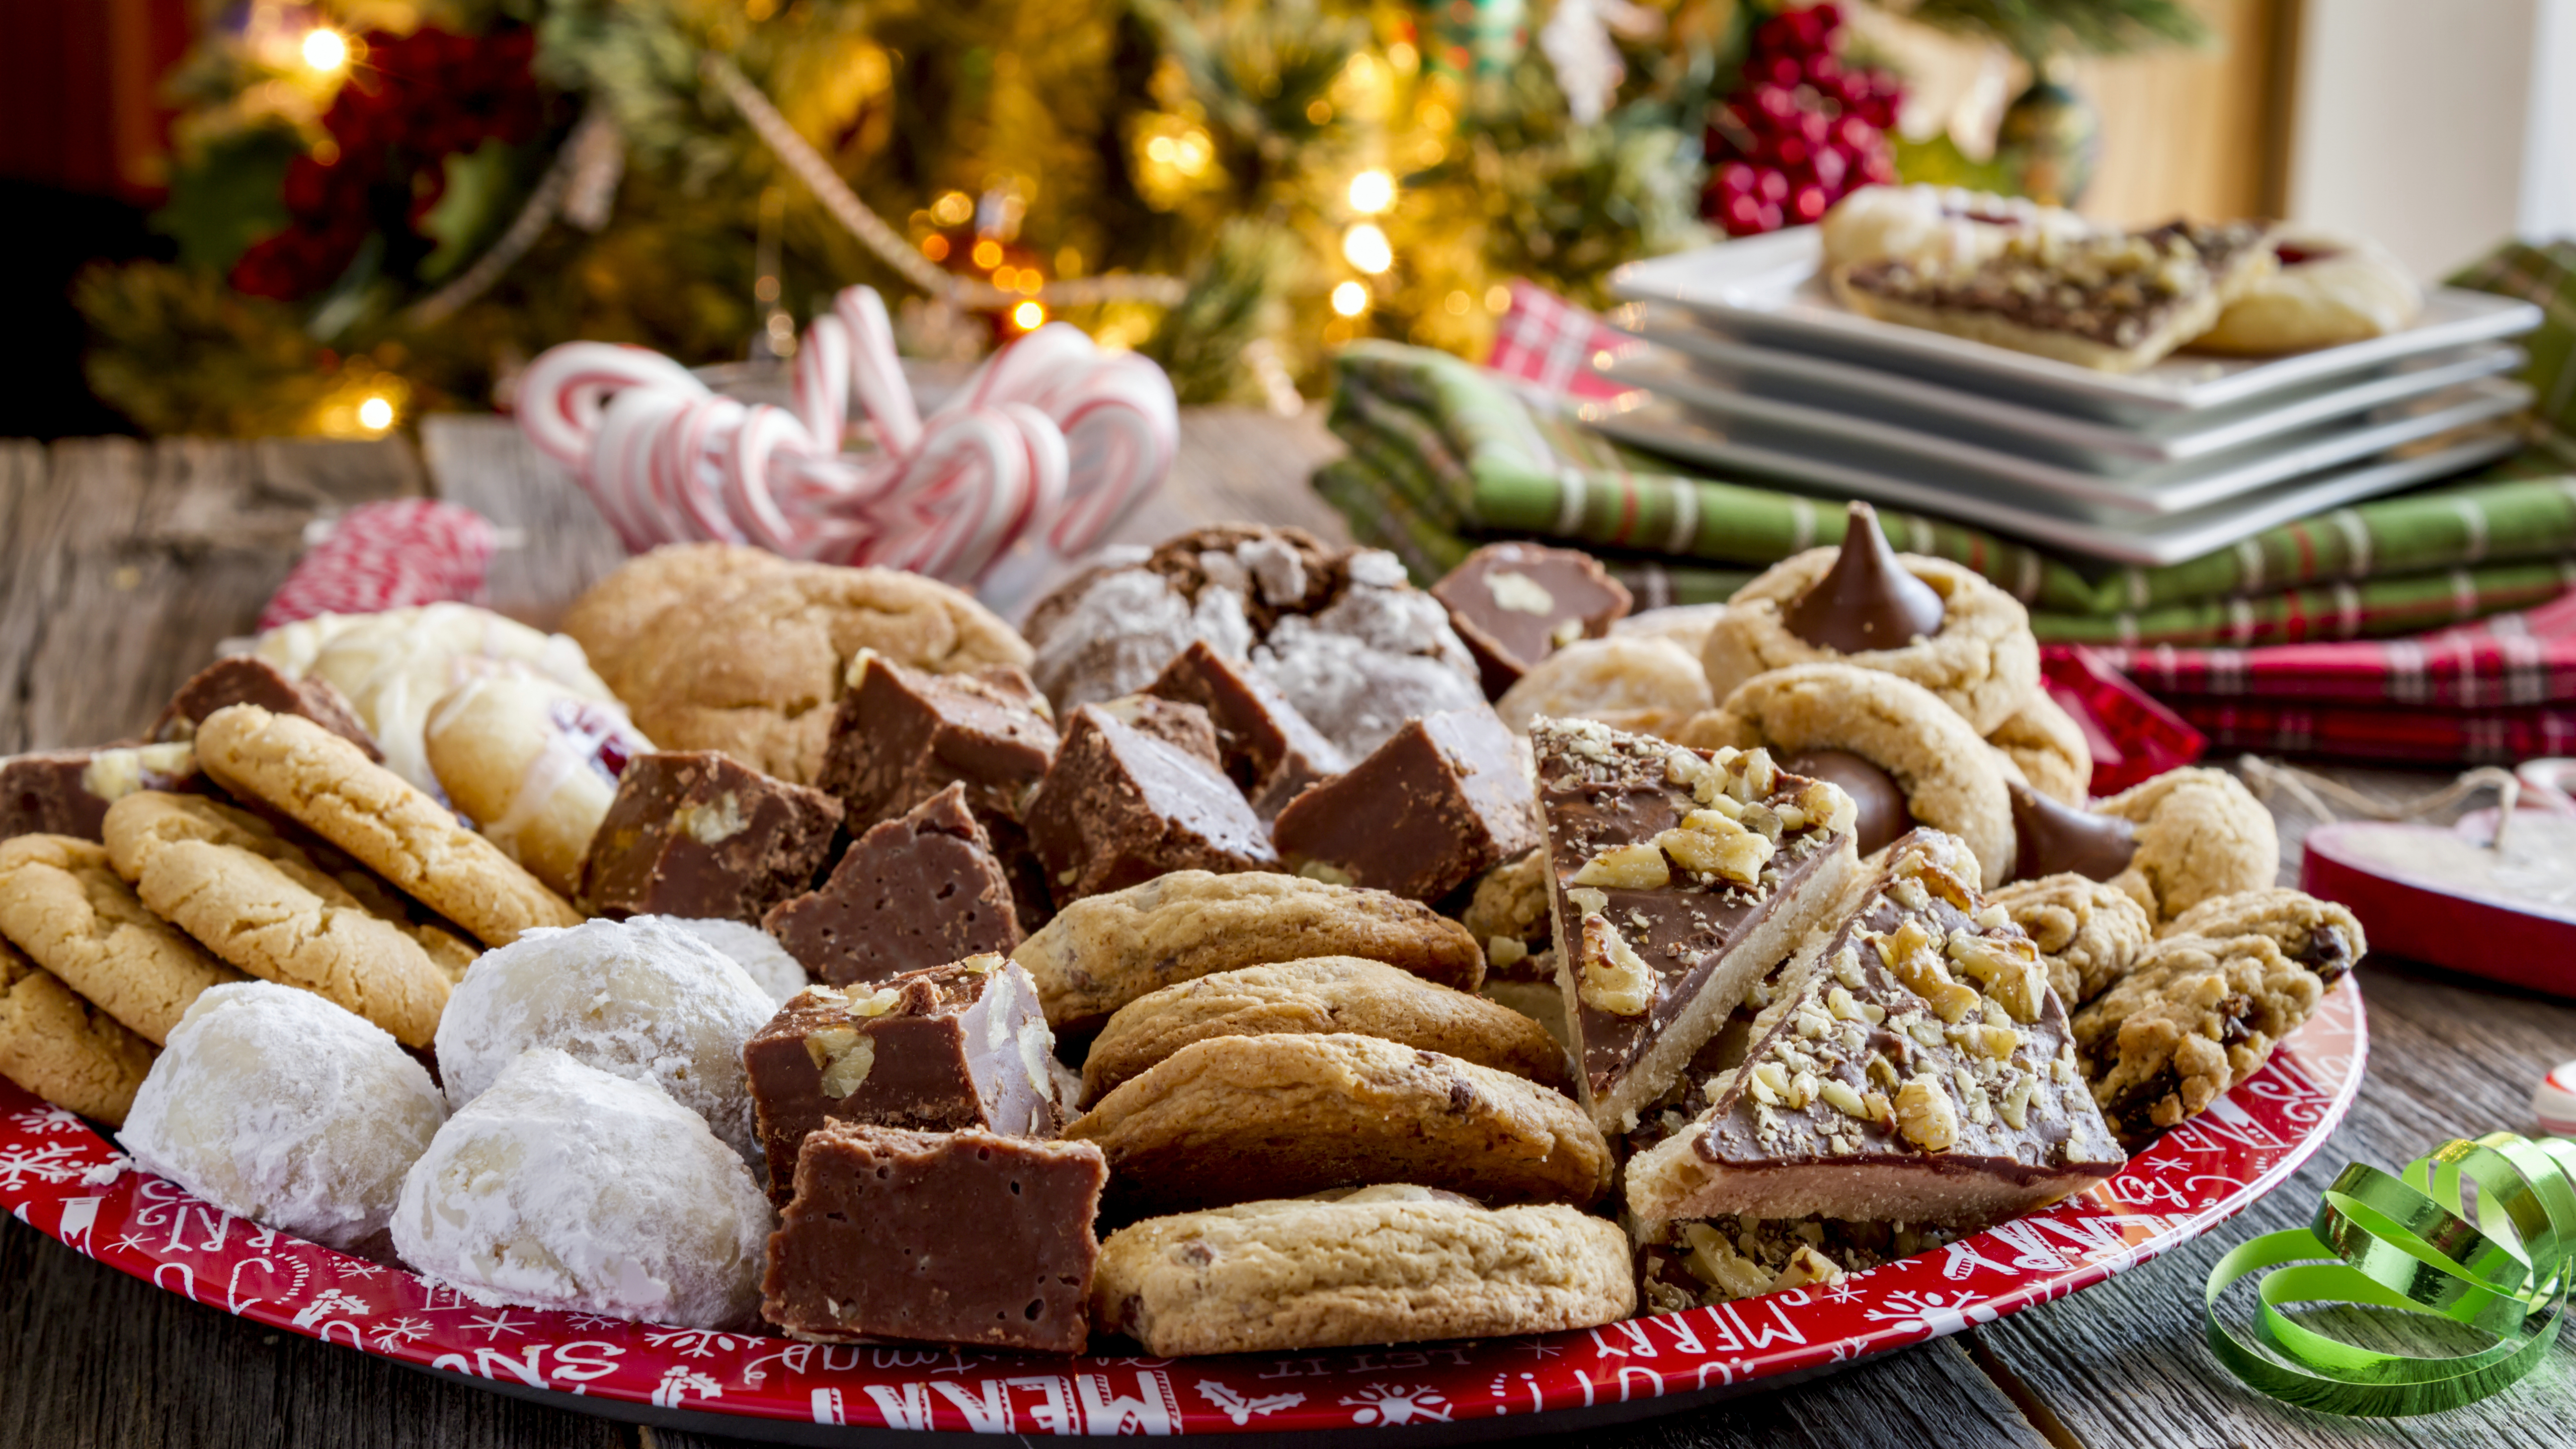 a large plate of sugar cookies and holiday treats for dessert